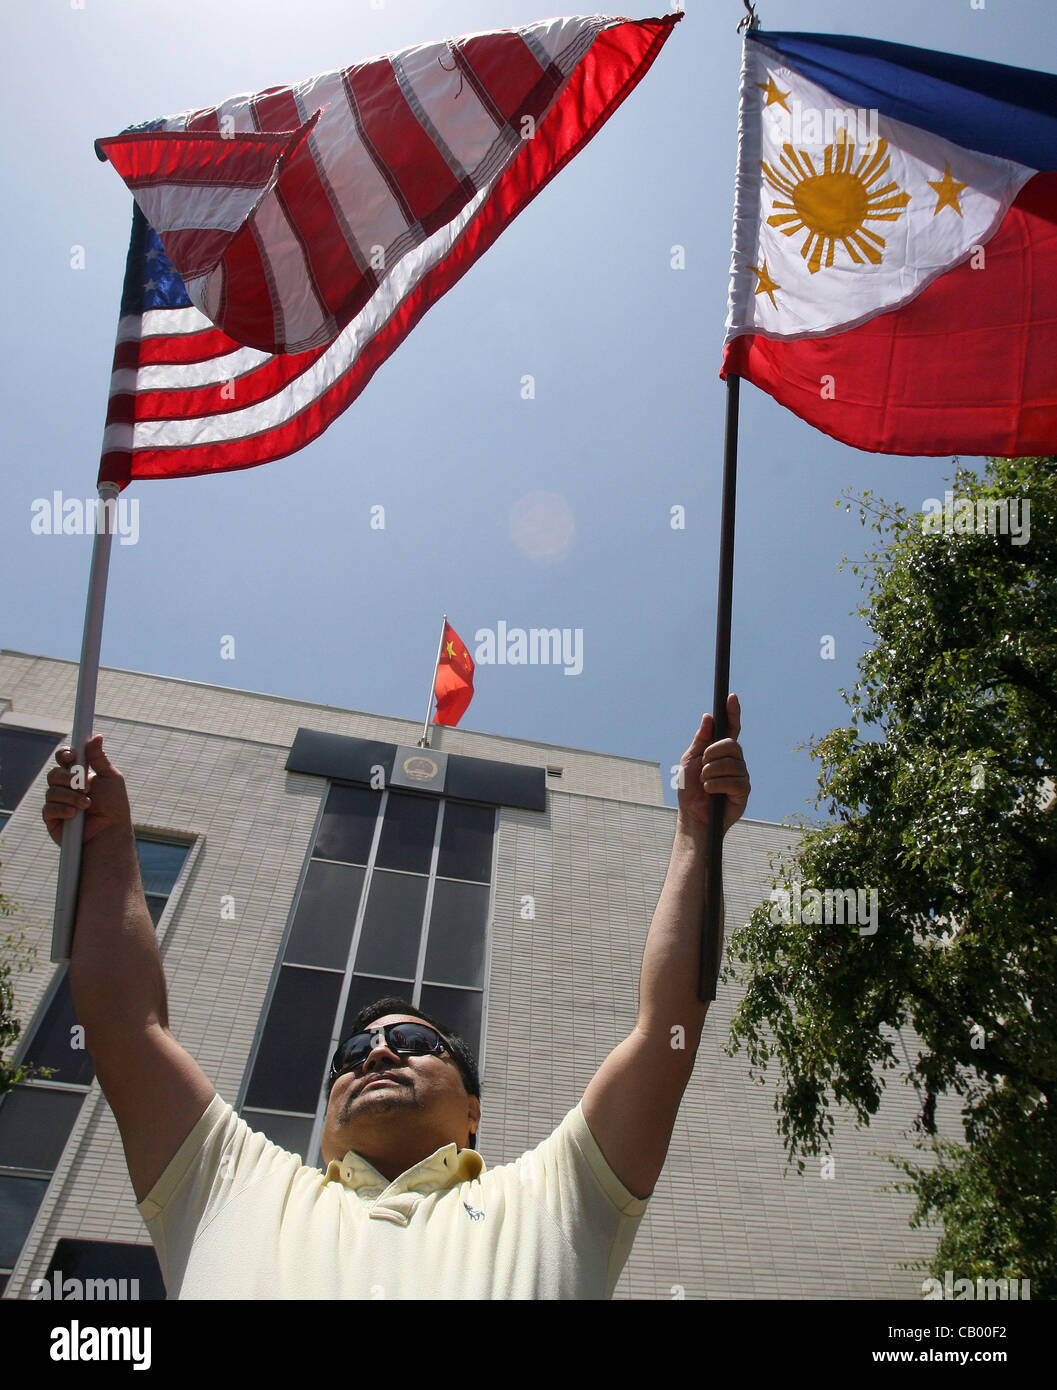 May 11, 2012 - Los Angeles, California, U.S. - A Filipino holds the US and Philippines flags during a demonstration - Stock Image